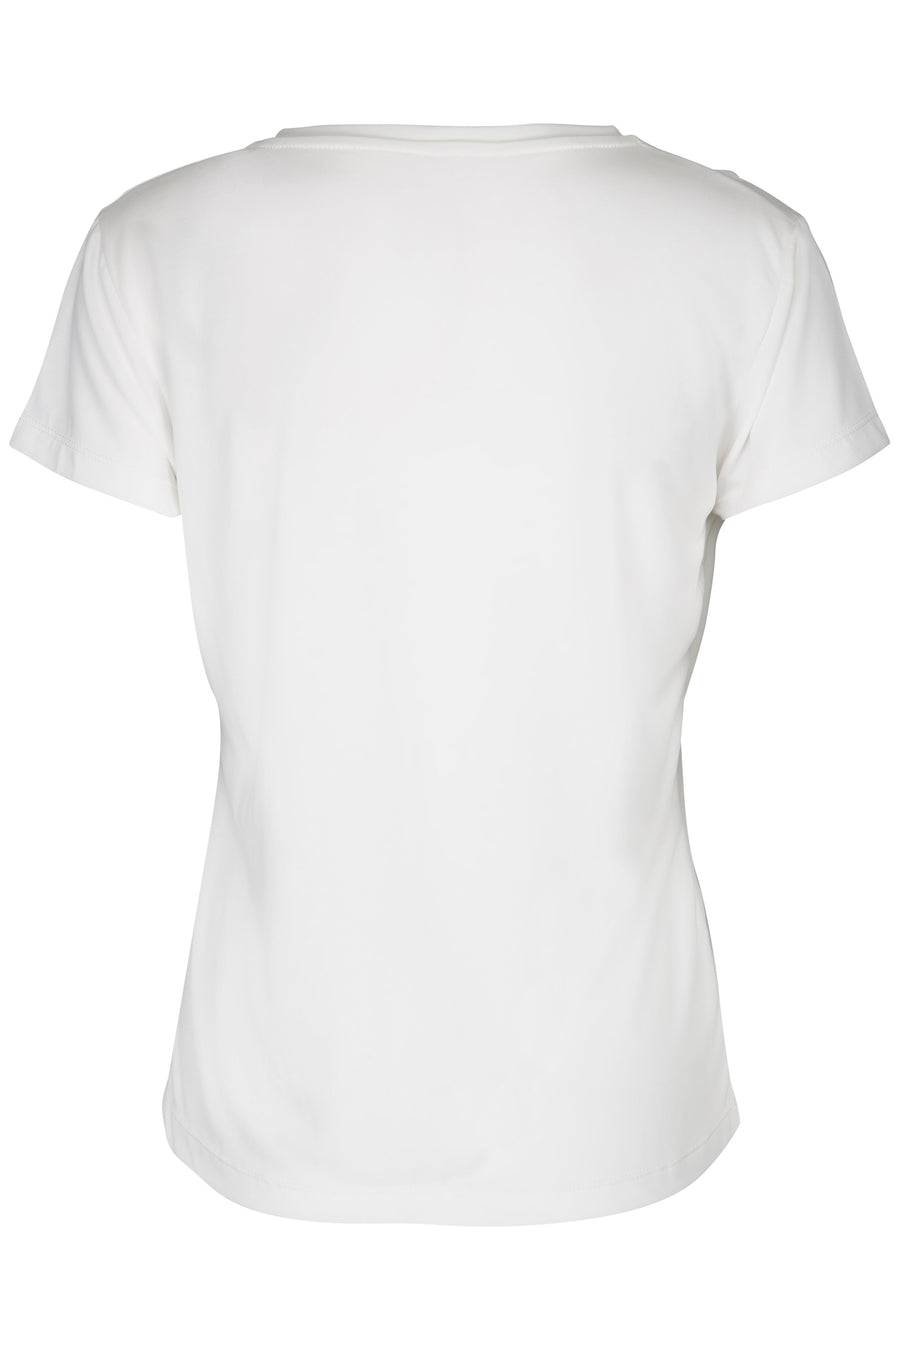 off white basic v neck t'shirt ladies